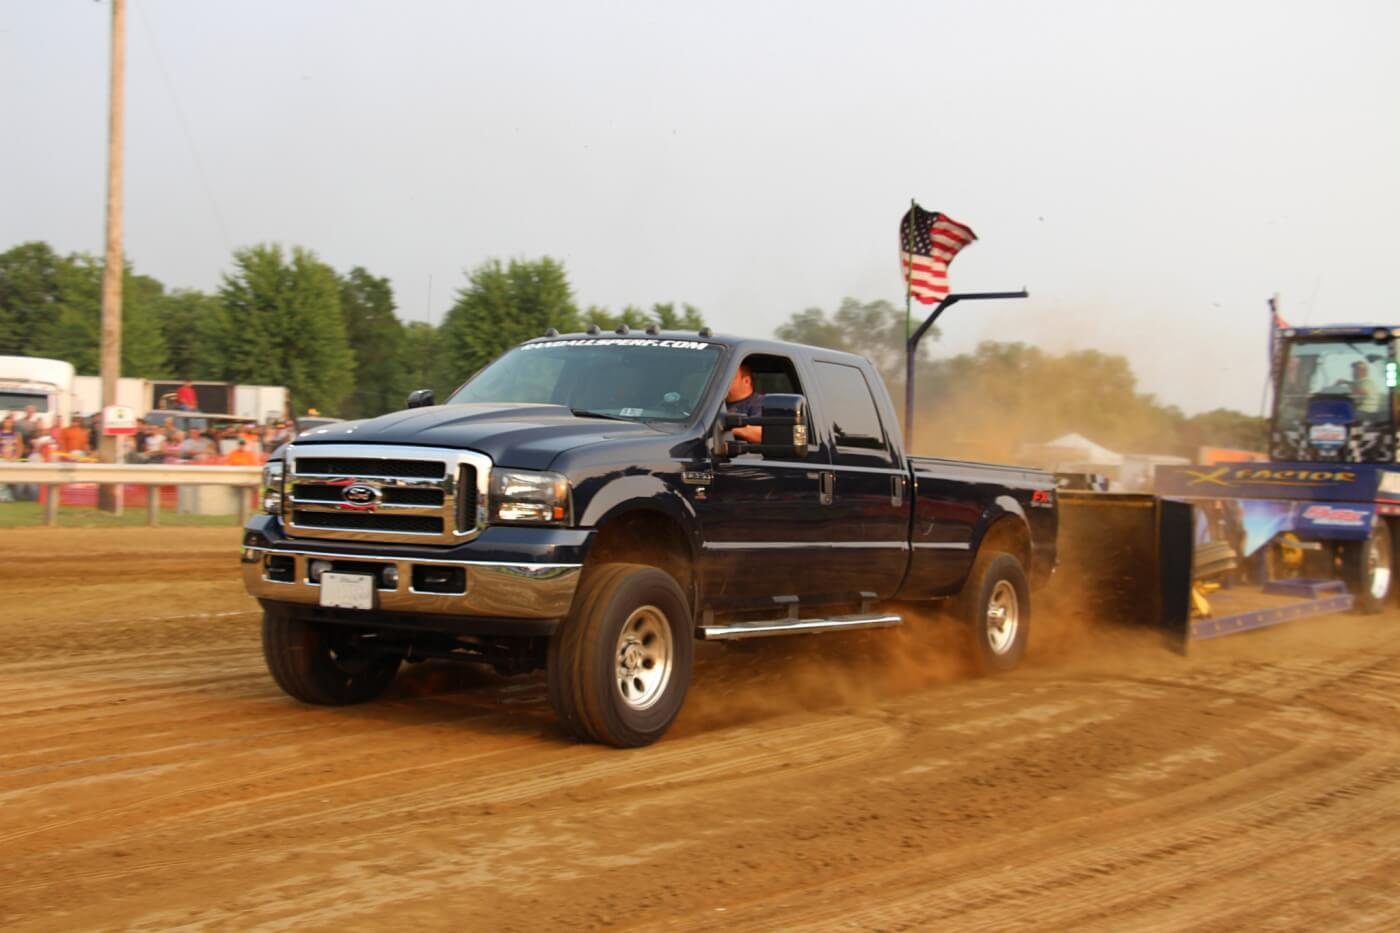 Putting his Cummins-powered Super Duty tow rig to work was Corey Finch. But although the ZF-6 shifted, 2005 Ford sends a respectable 680 hp to the ground, a hurt dual disc clutch hampered his efforts to make it to the top in Open Street.